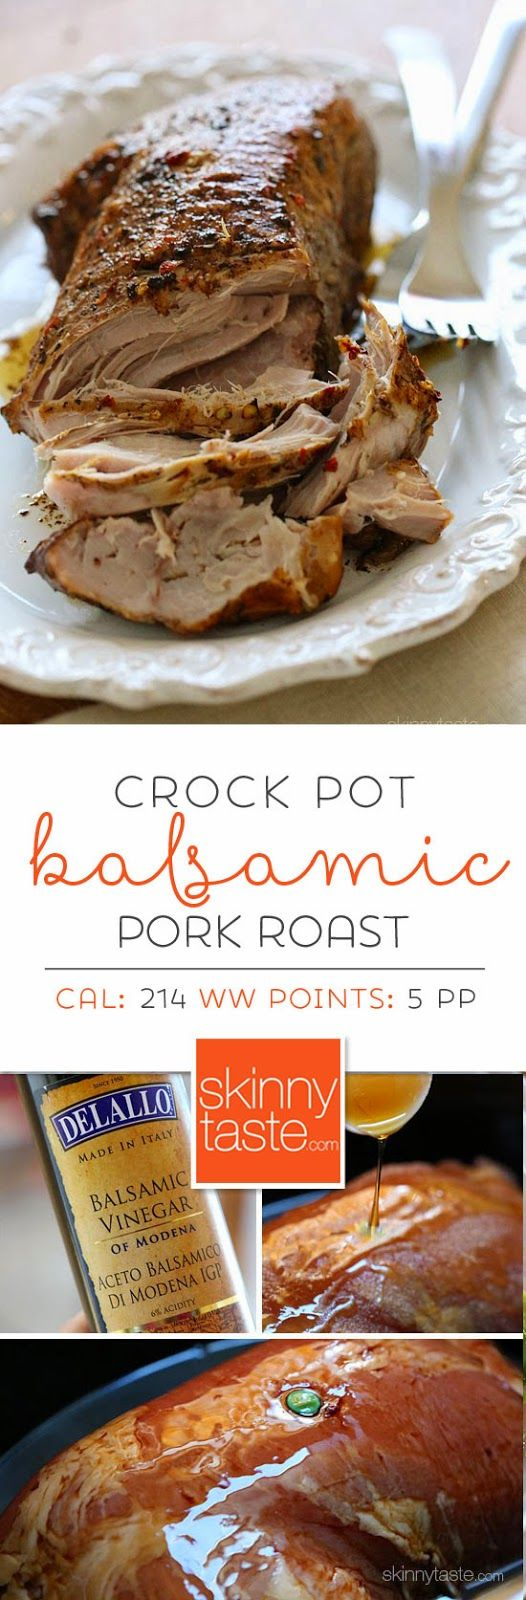 Crock Pot Balsamic Pork Roast- I didn't have honey in the house (thought I did) so I substituted brown sugar. Big hit!